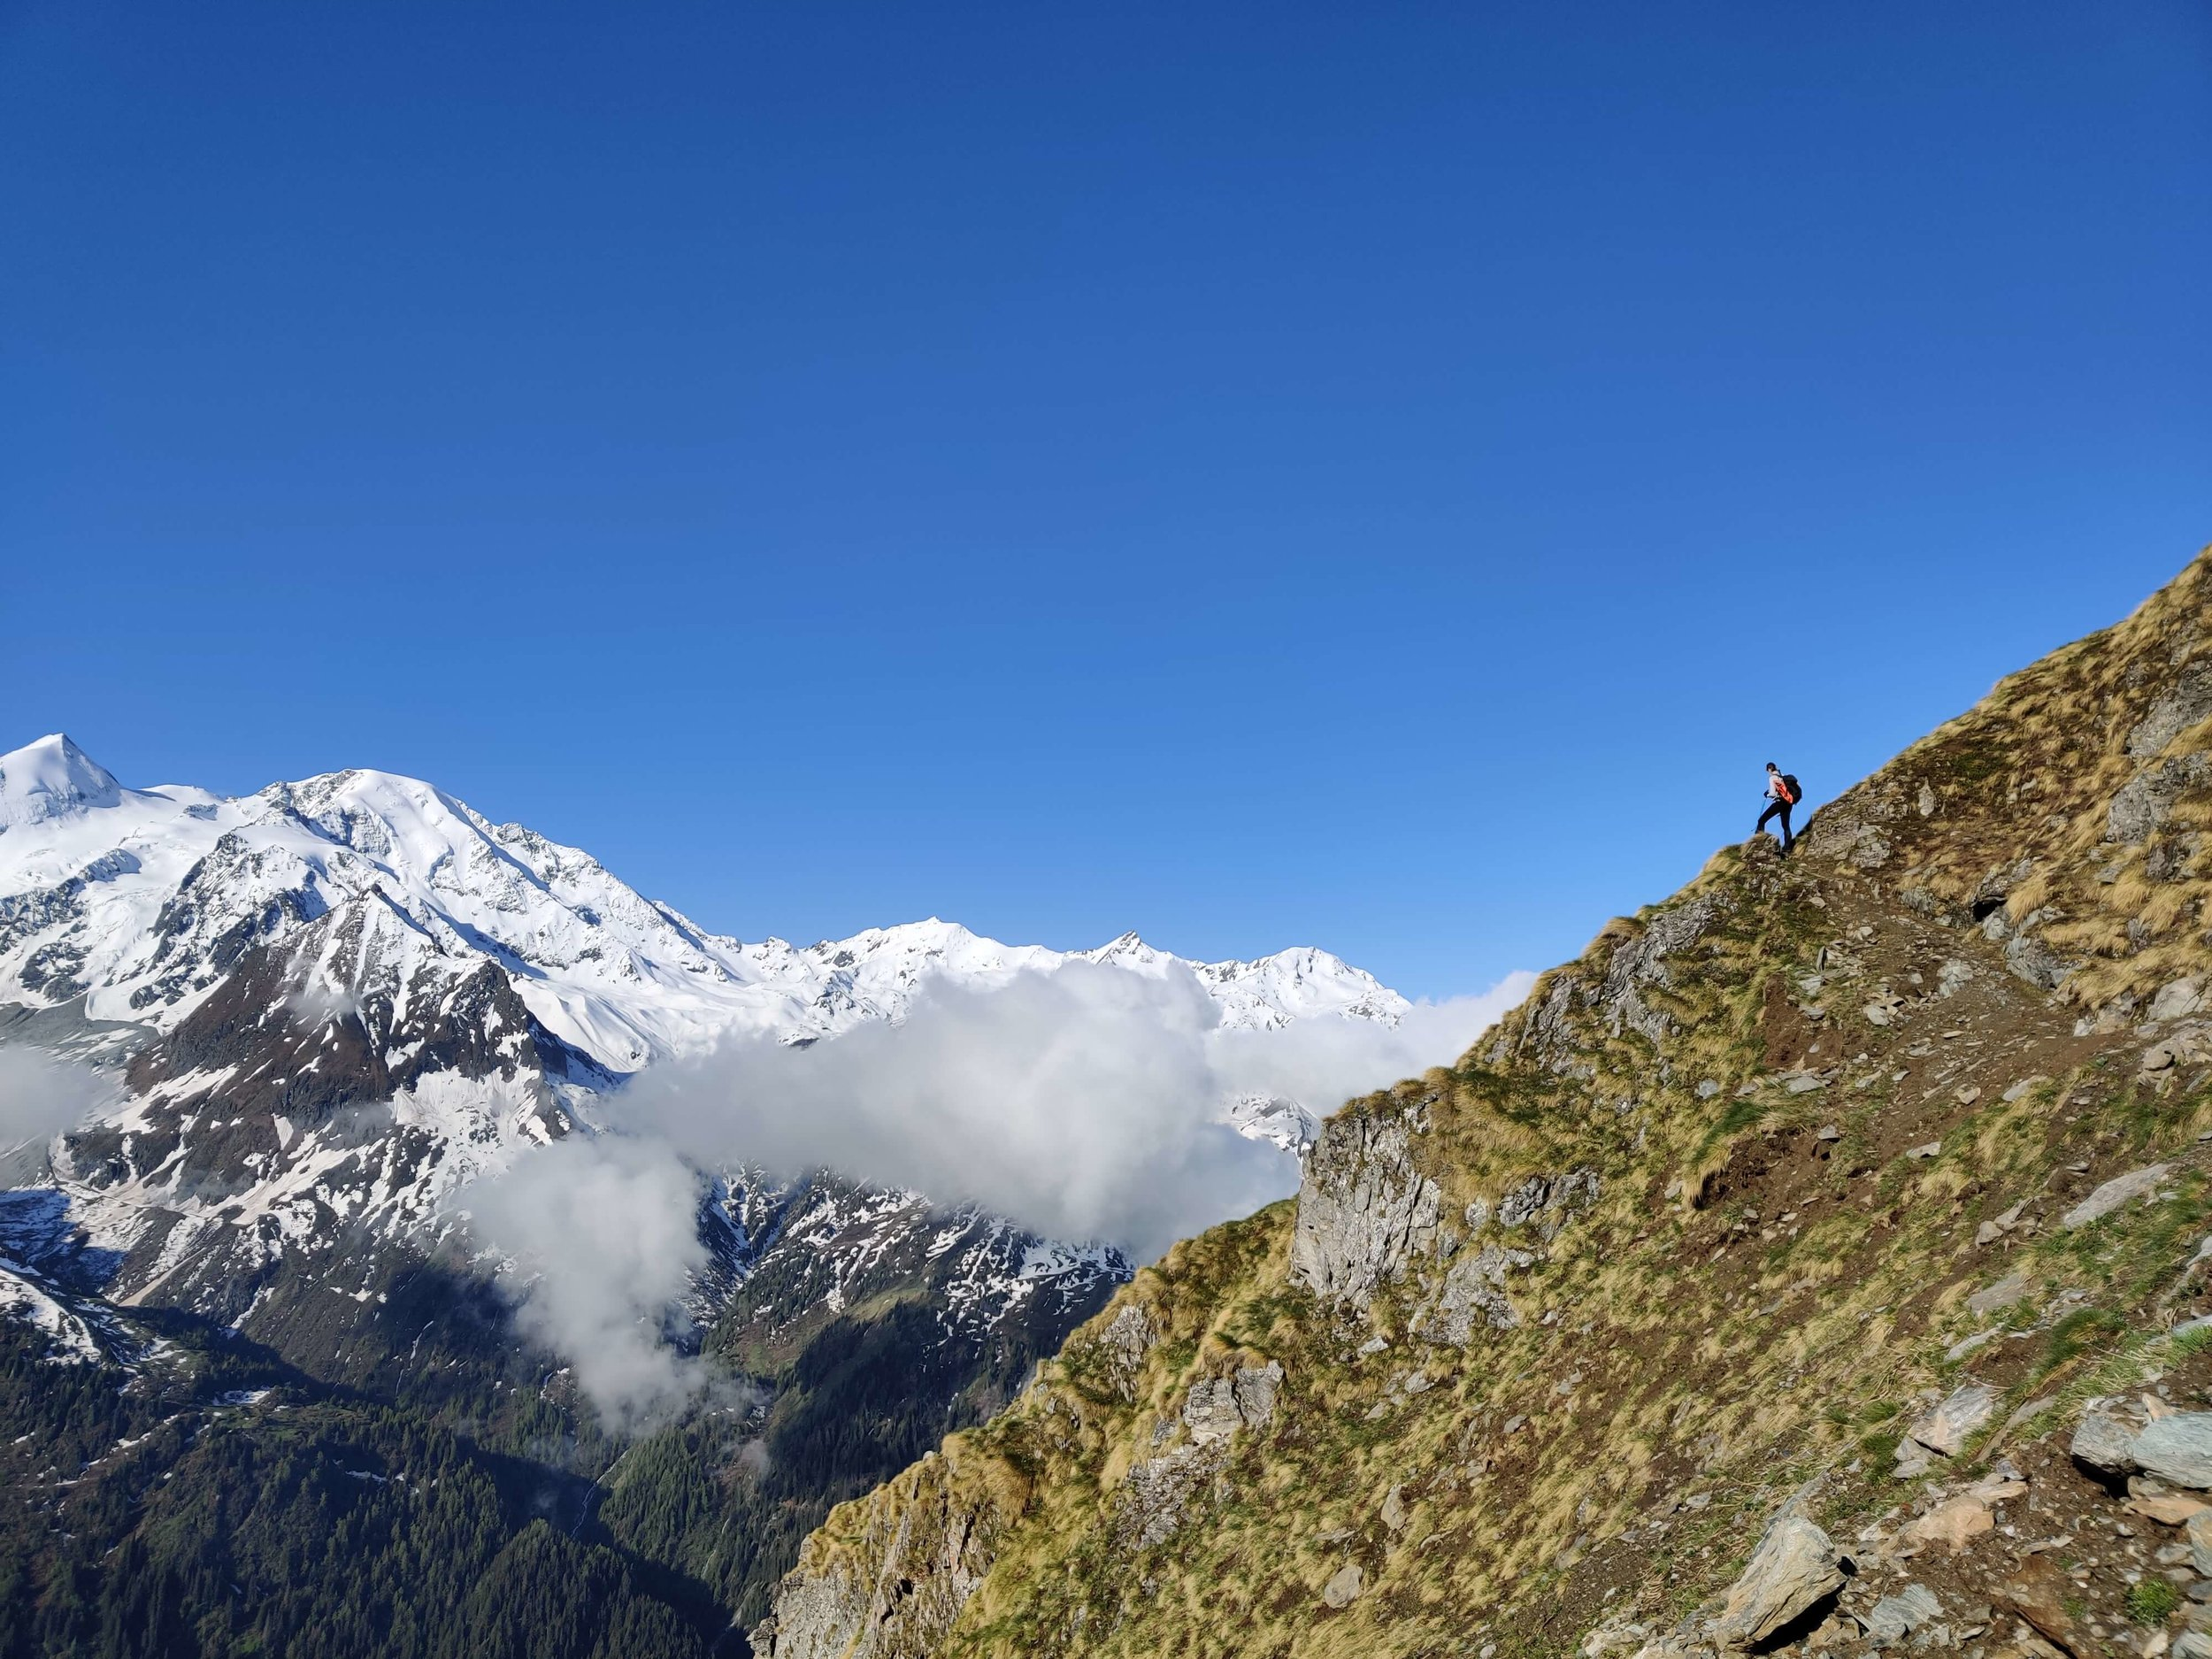 Four seasons in one trail:  June 2019 on the Haute Route